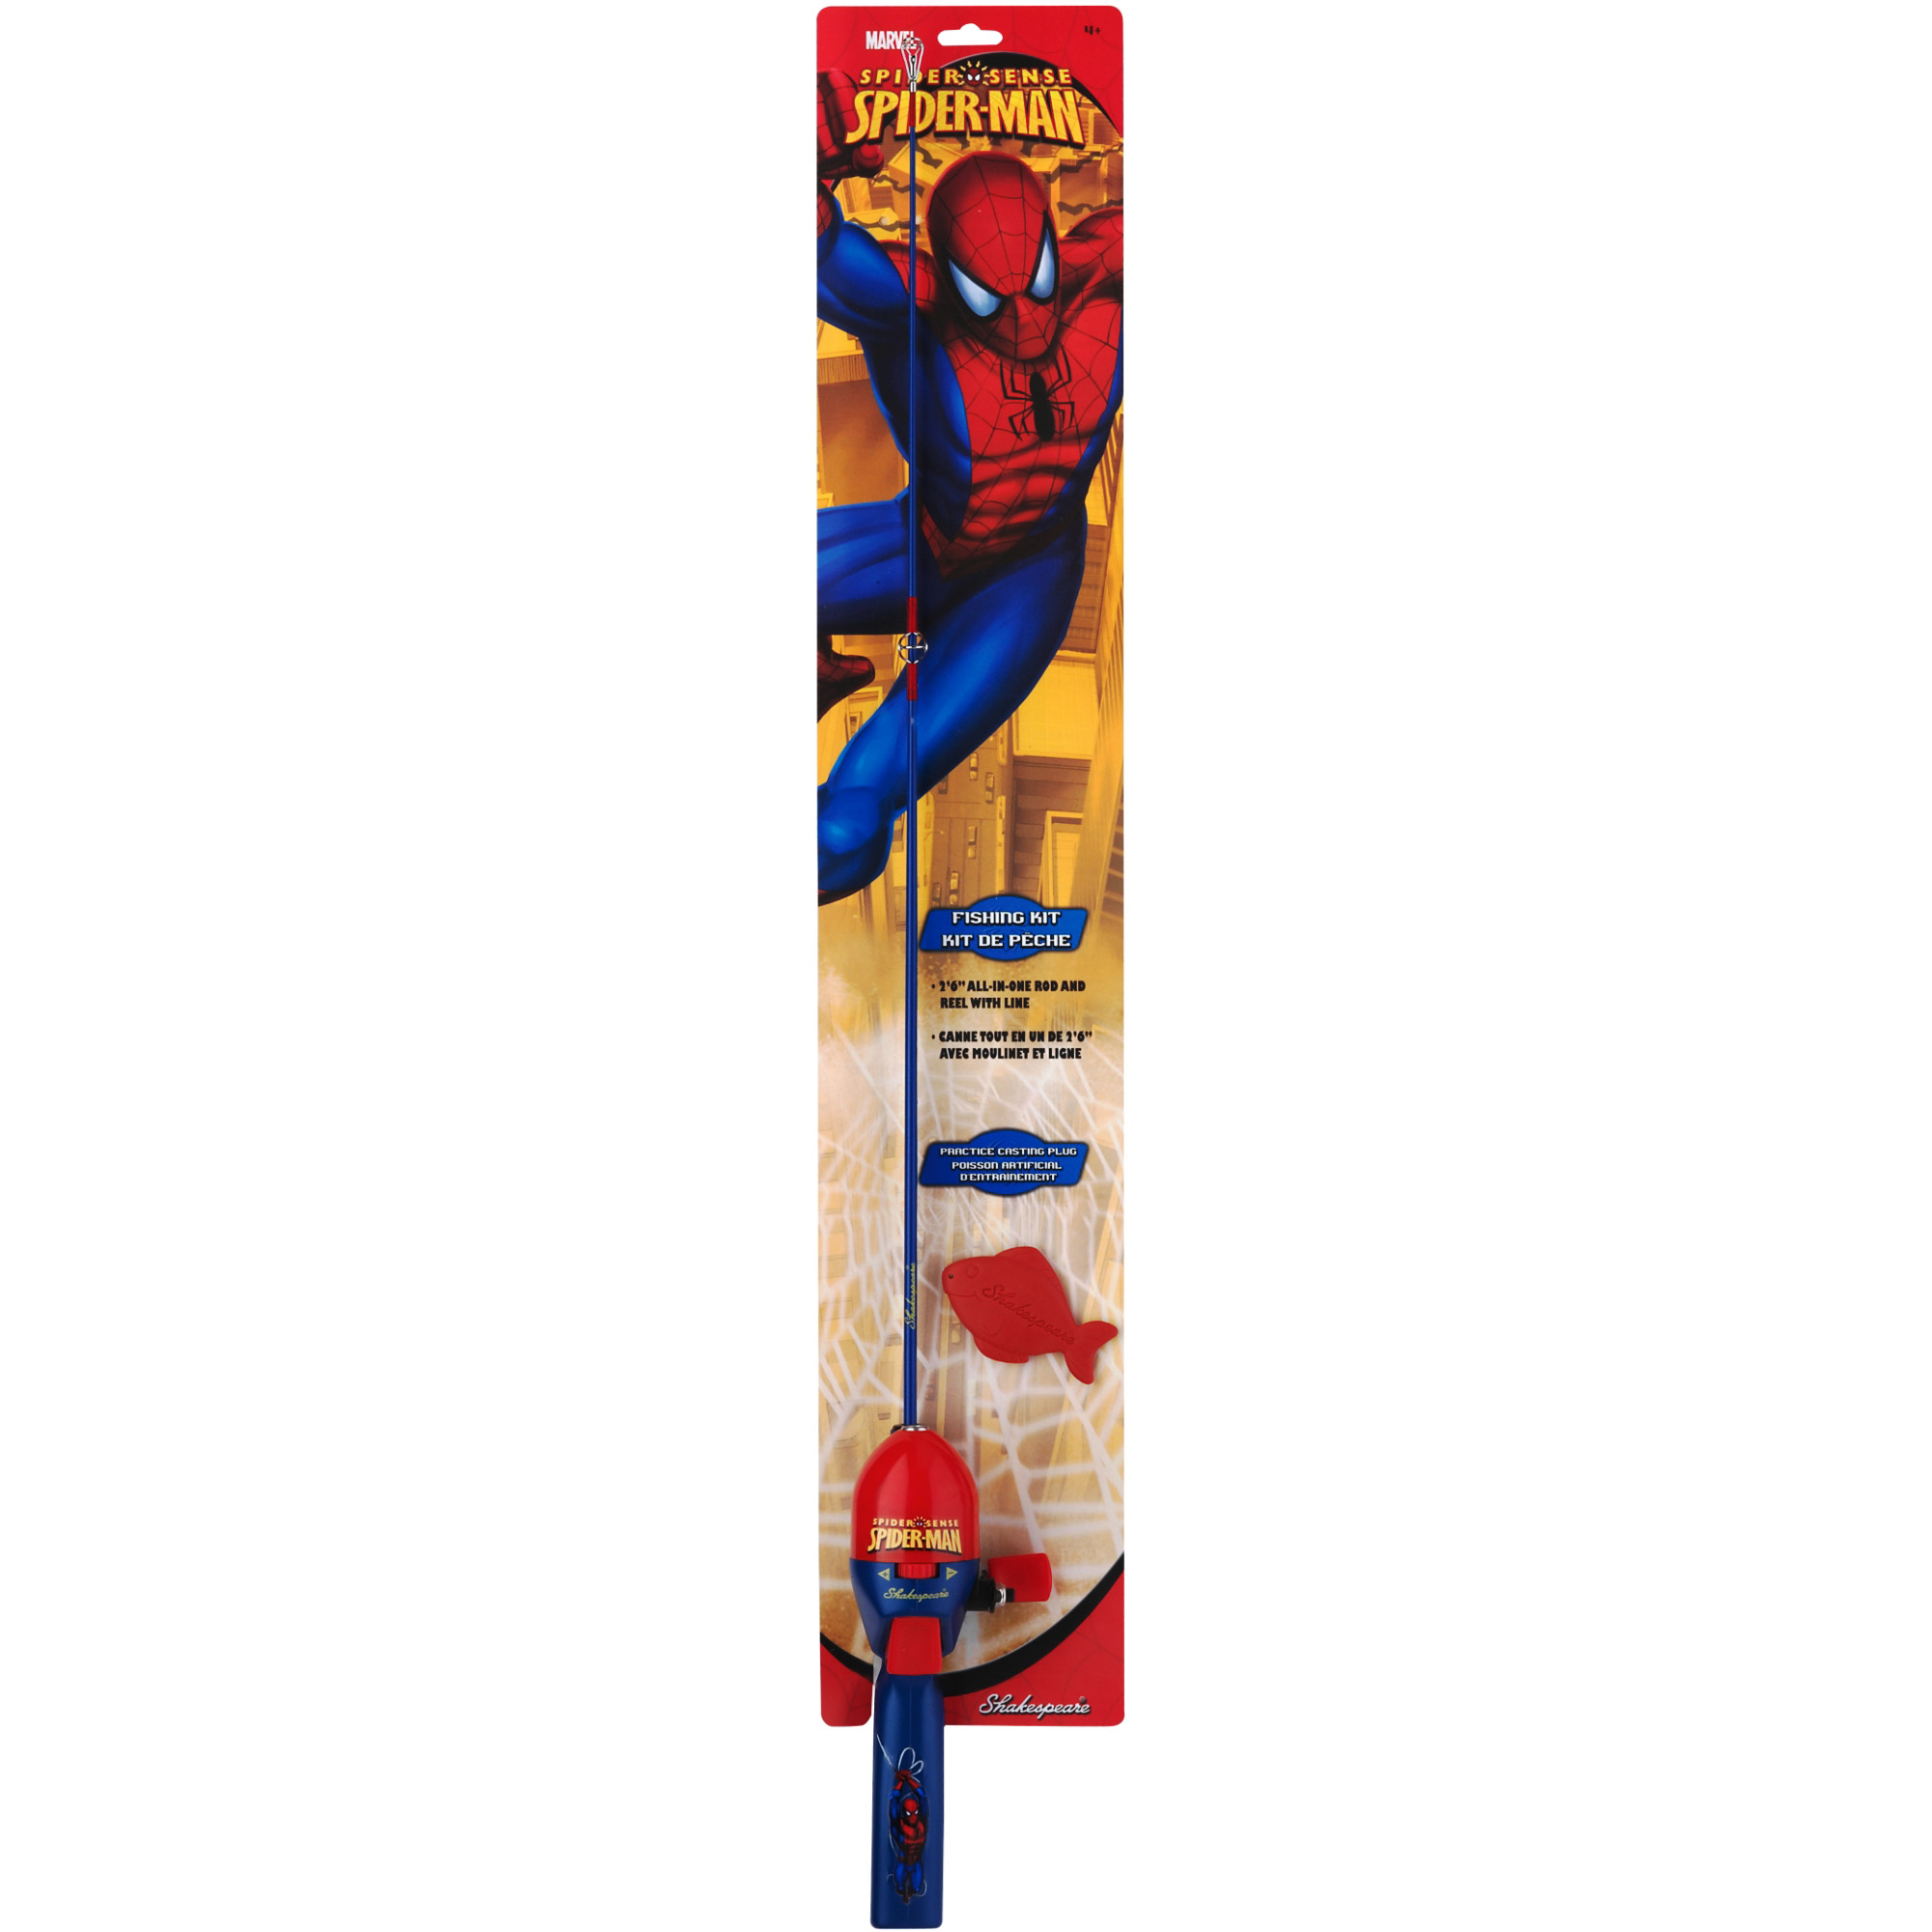 Shakespeare Spider-Man Fishing Kit with 2'6